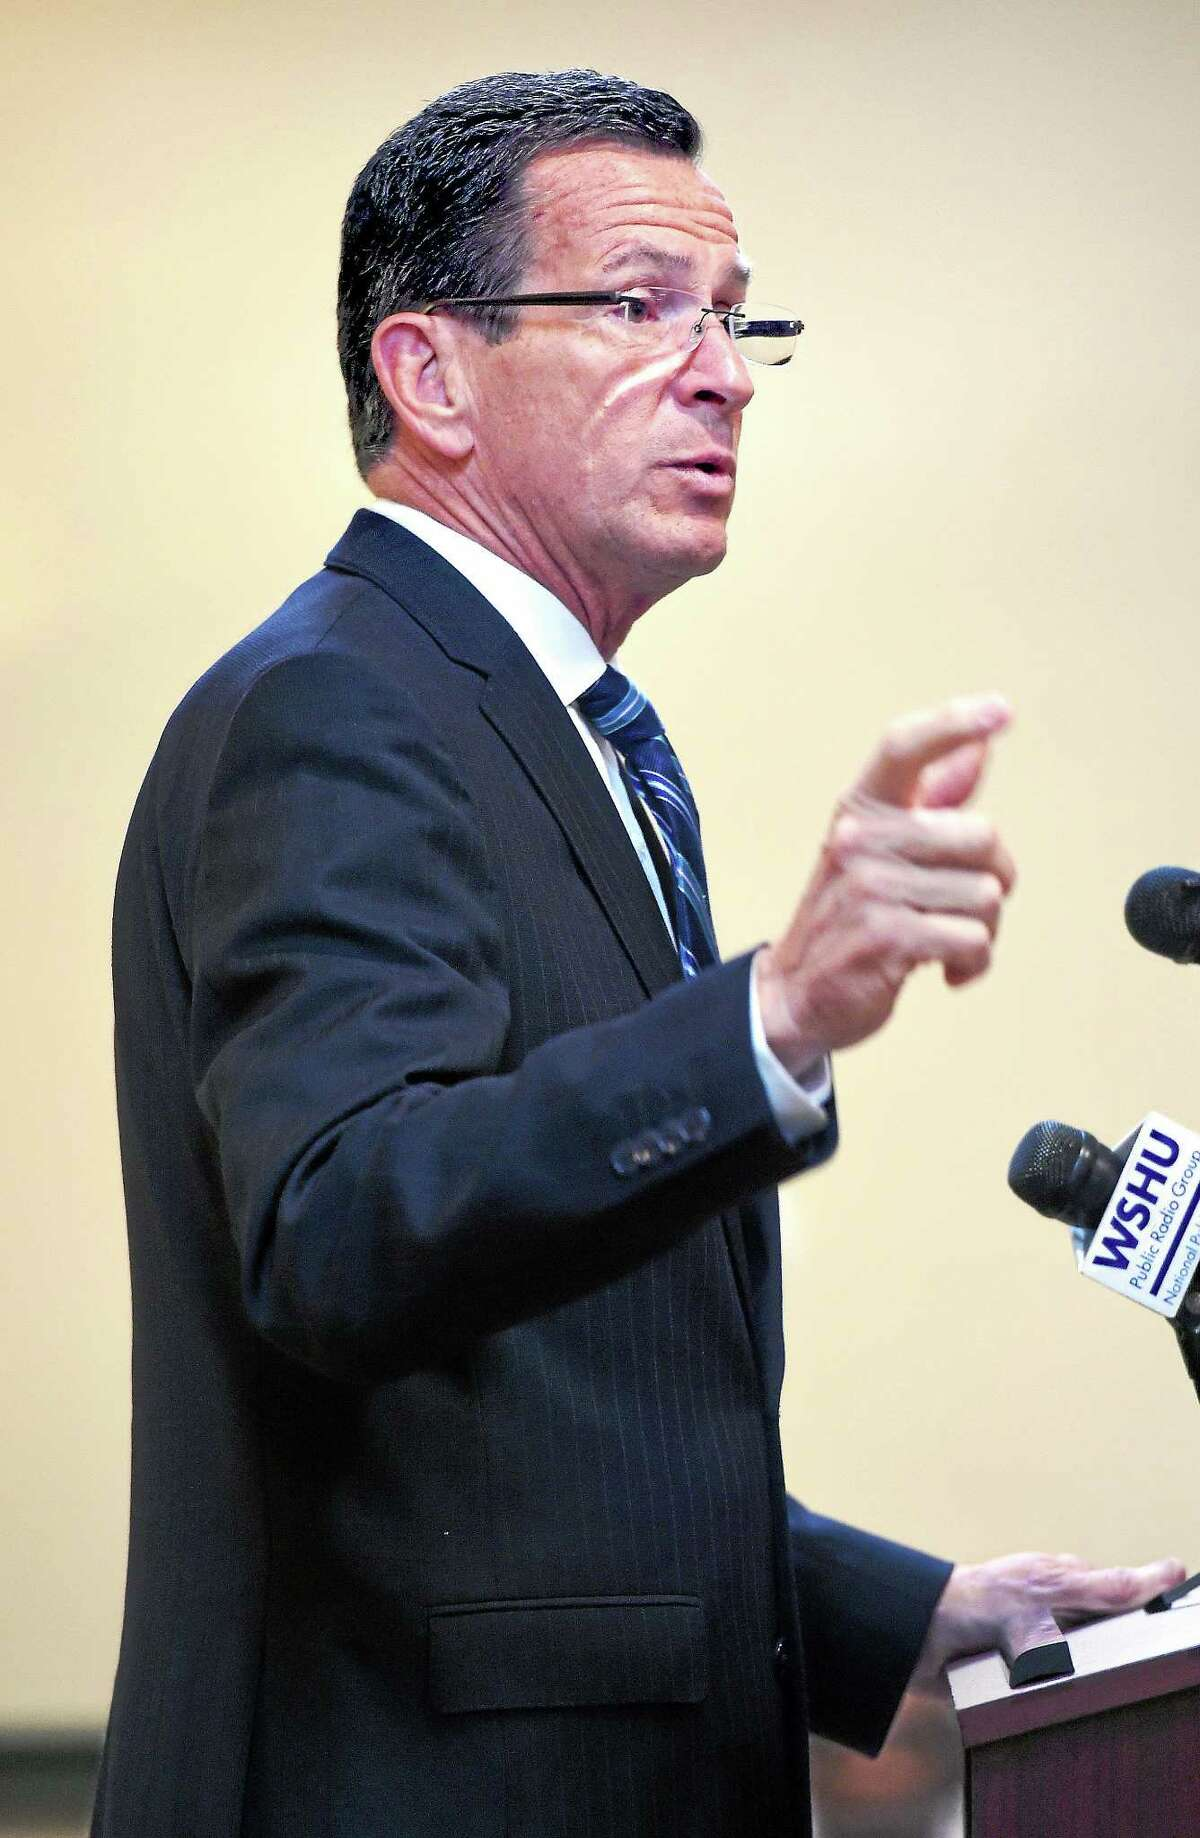 Connecticut Gov. Dannel P. Malloy speaks at a Transportation Forum in North Haven Monday.